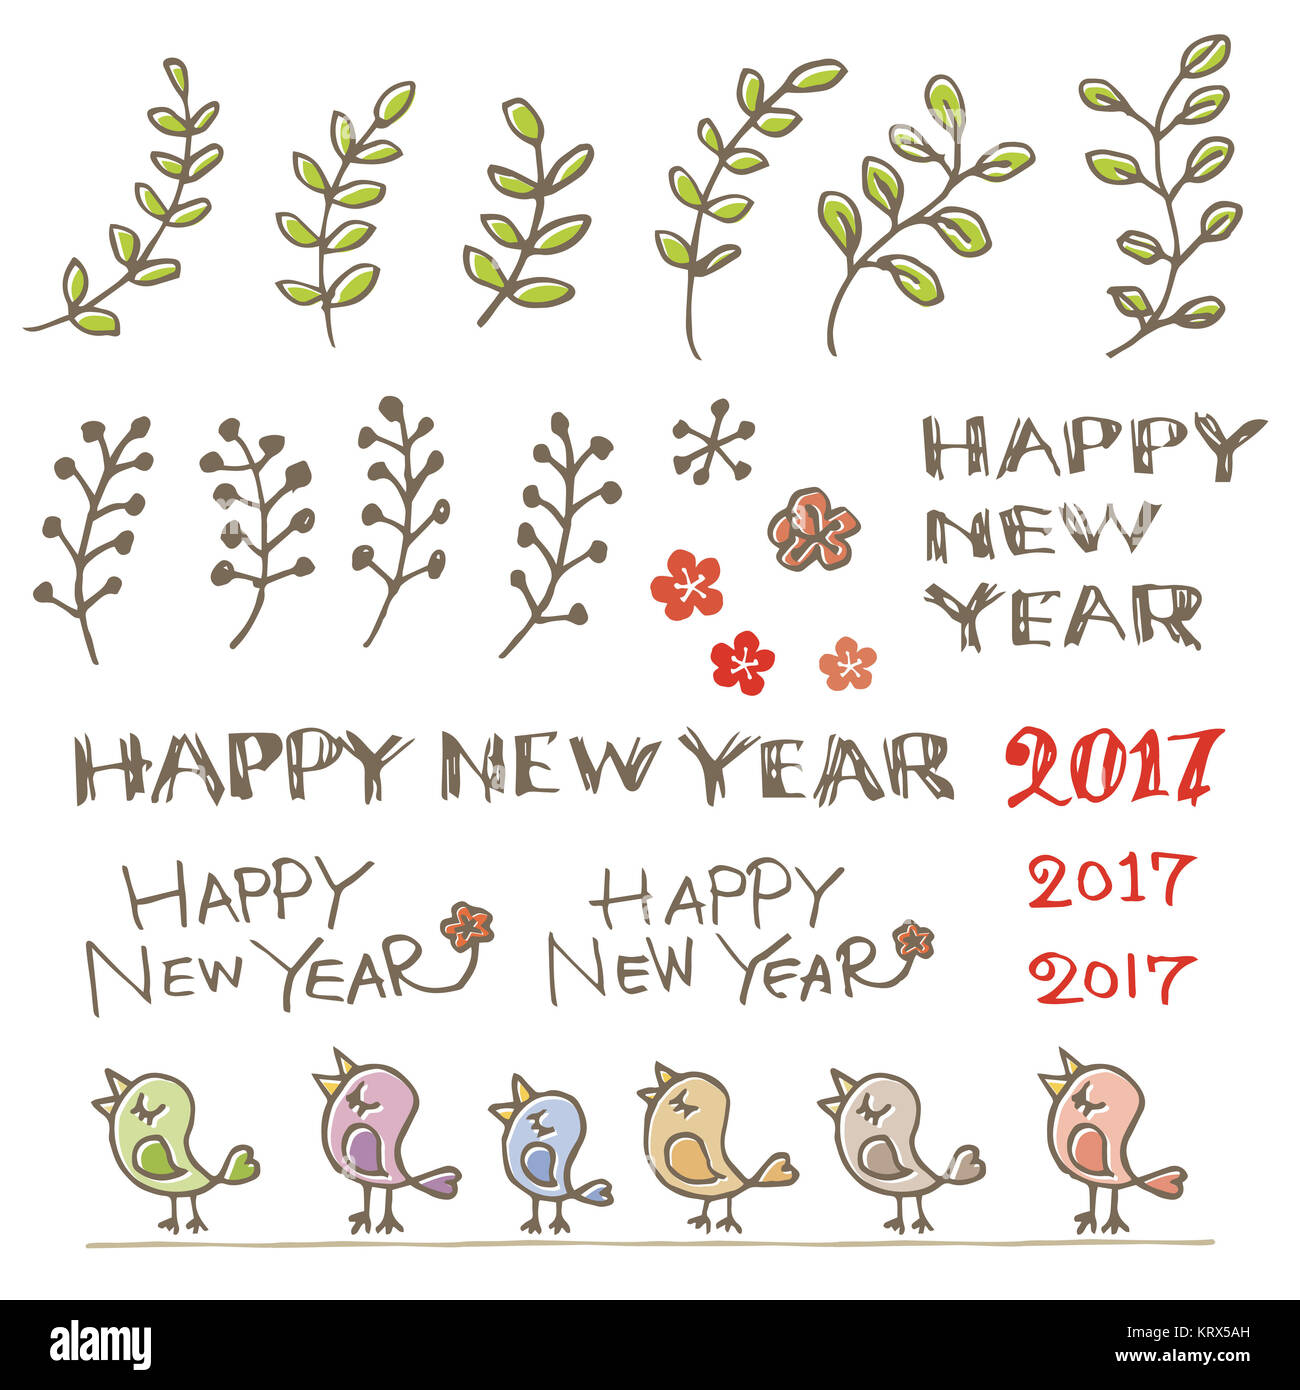 Little birds plant and new year greeting words stock photo little birds plant and new year greeting words m4hsunfo